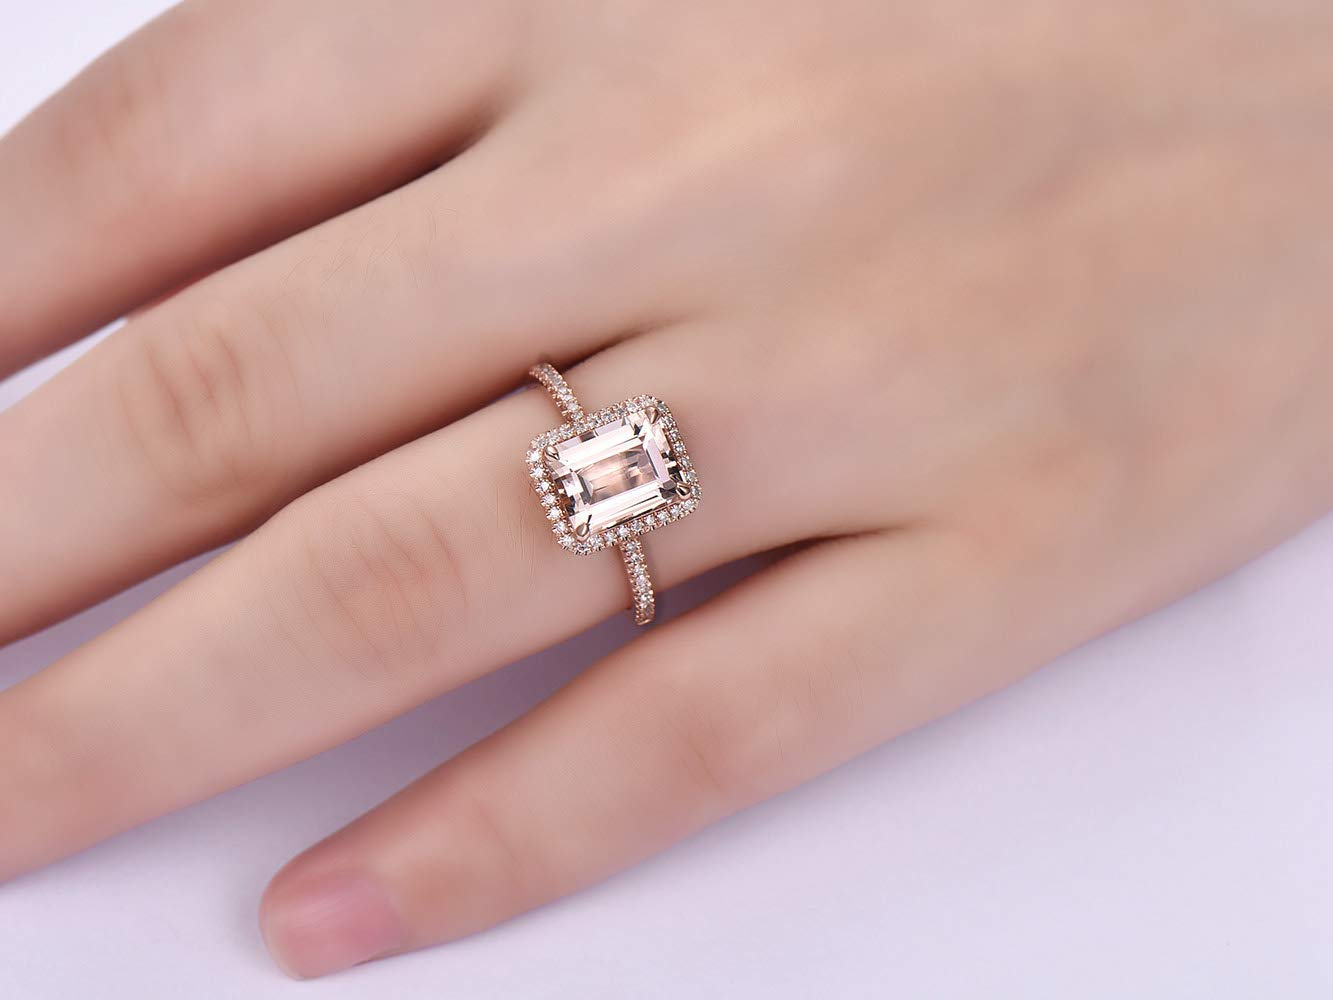 Buy 14K Rose Gold Emerald Cut Diamond Milgrain Engagement Ring For Women  0.65 Ct GIA (D Color,VVS1 Clarity) in Cheap Price on m.alibaba.com